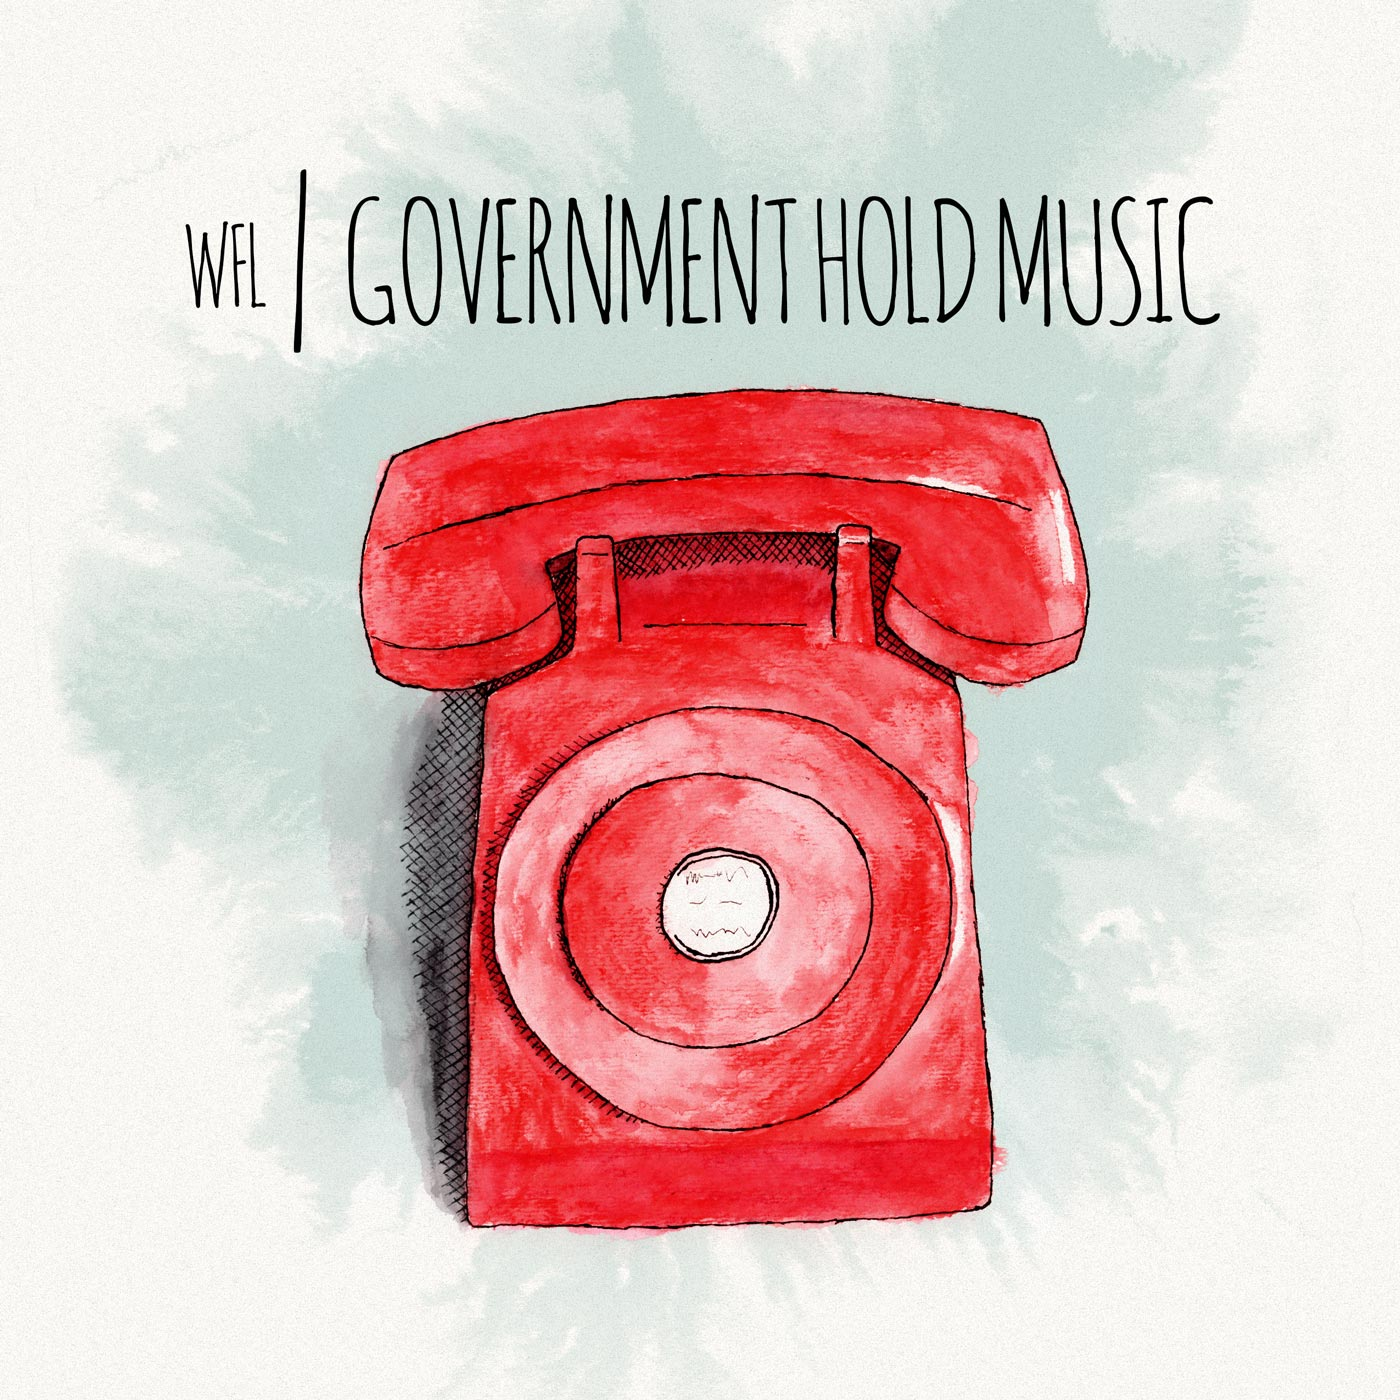 Government Hold Music